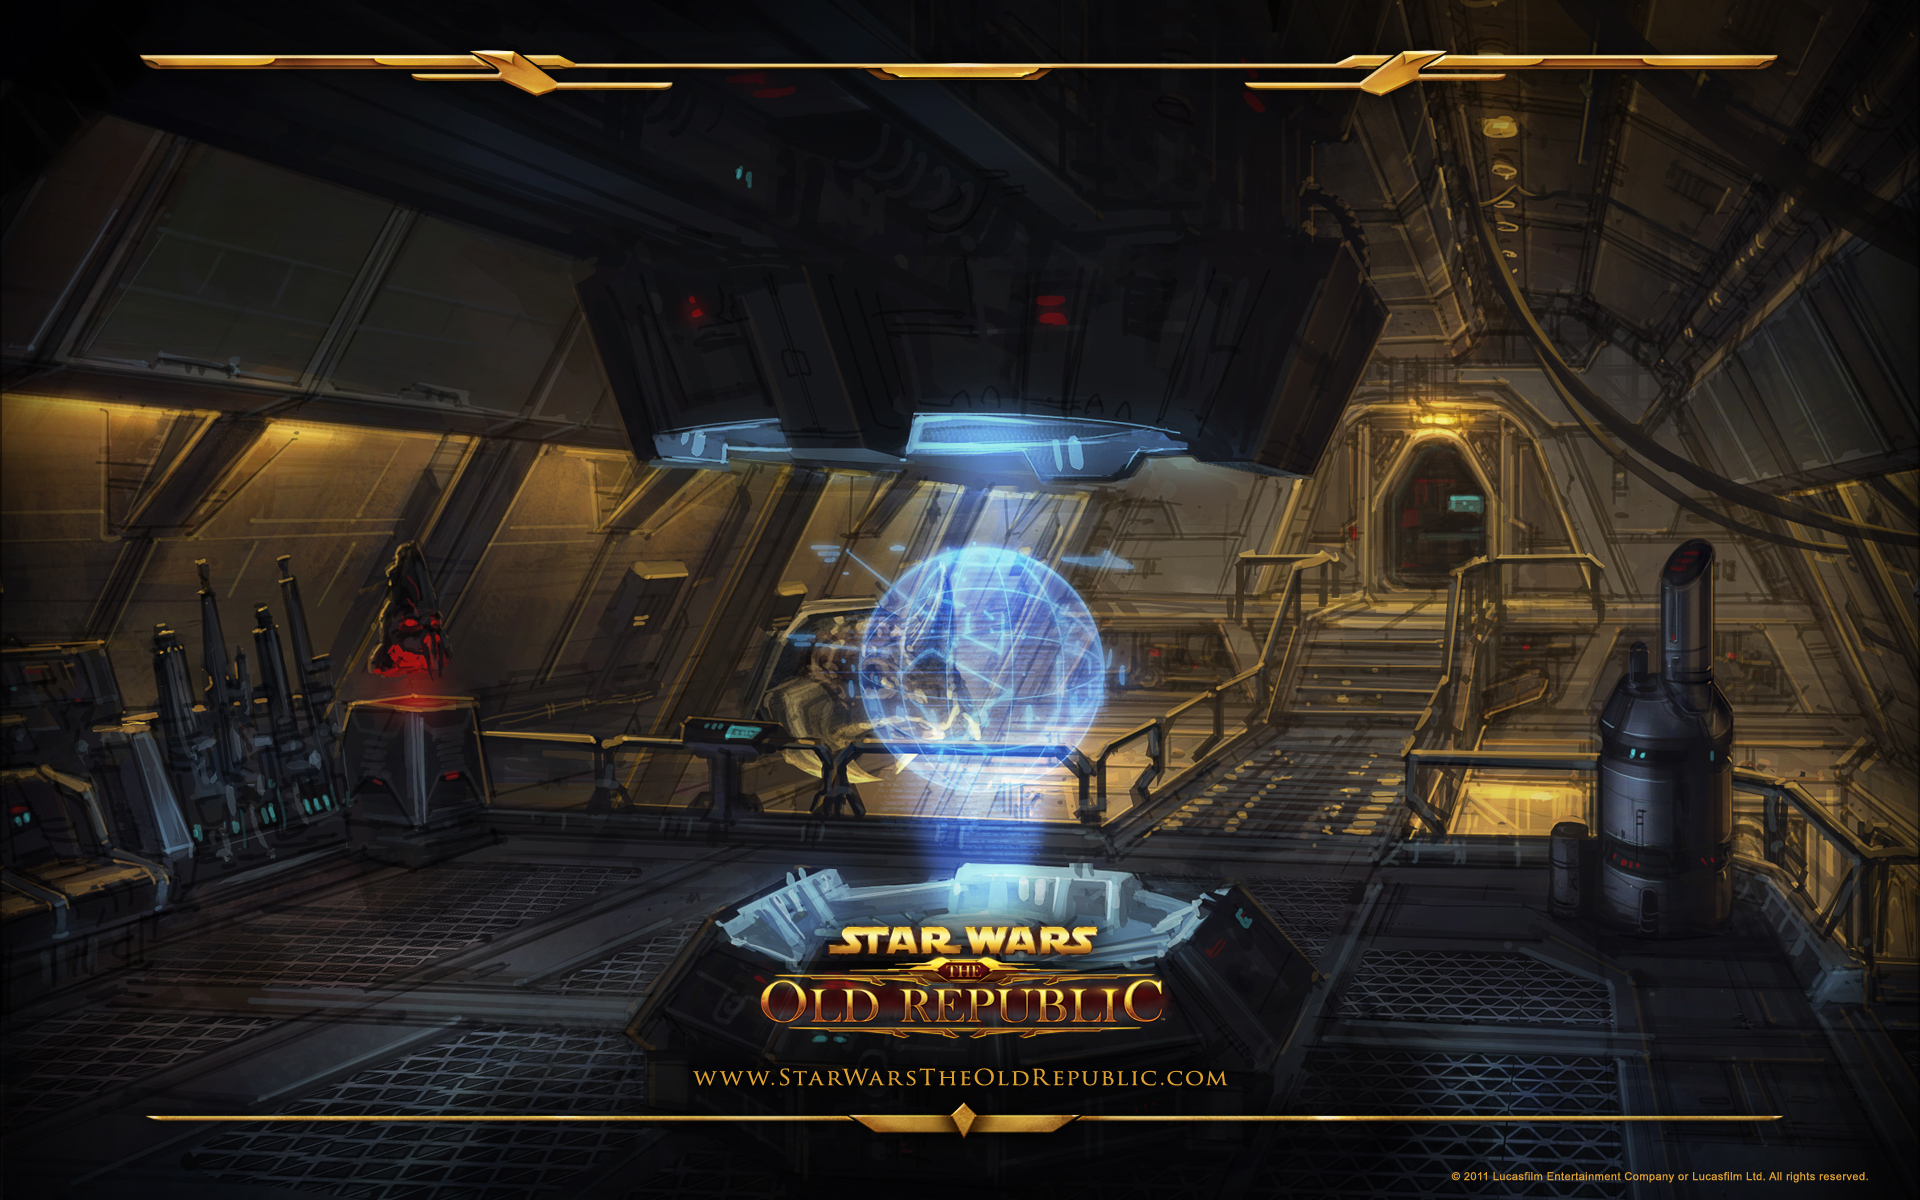 Star Wars the Old Republic wallpaper 4